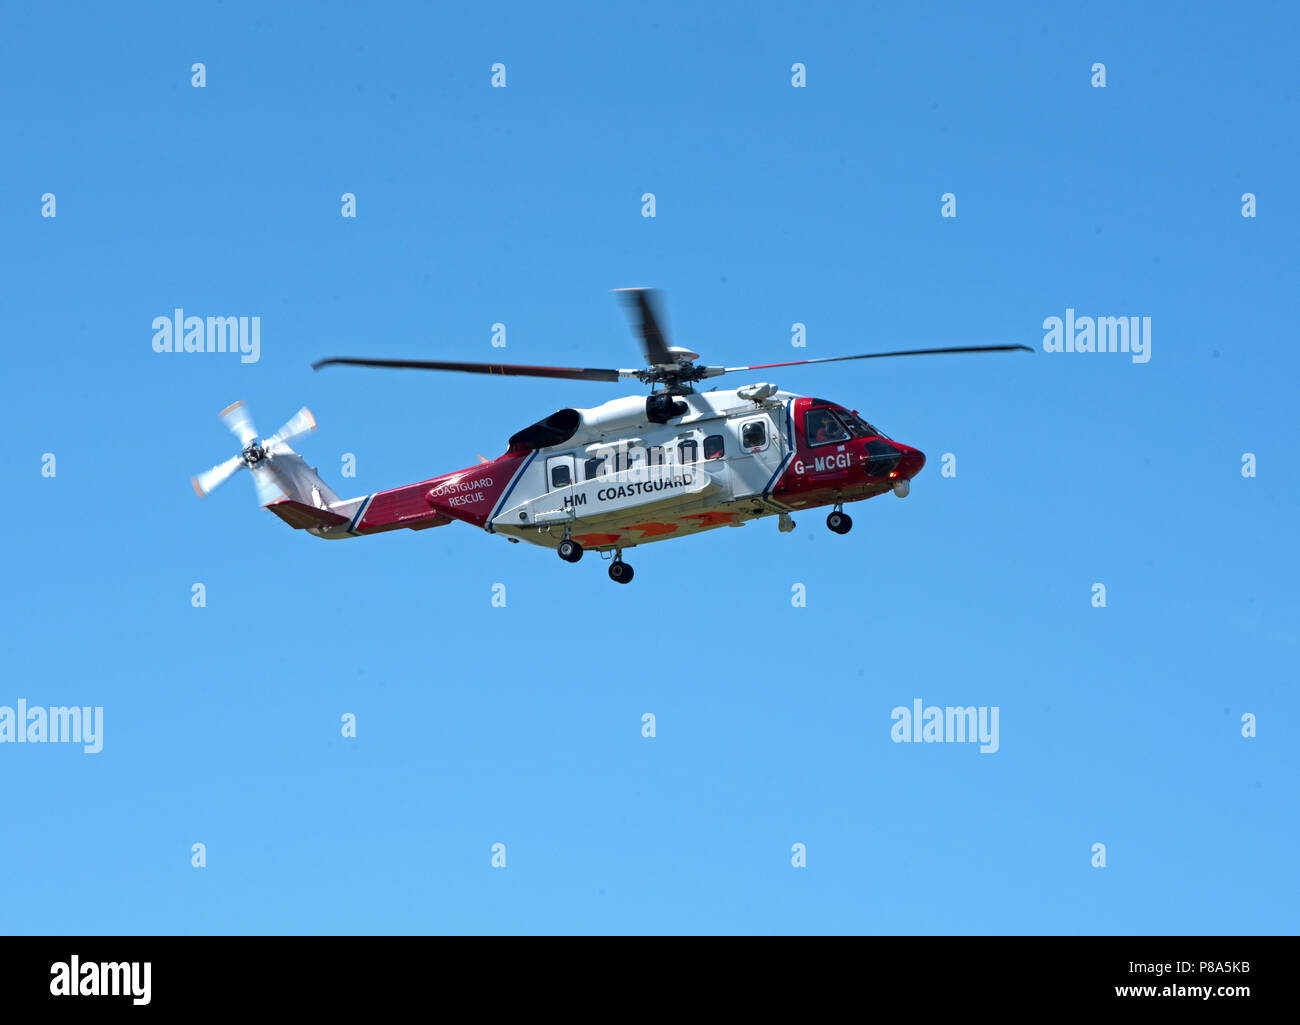 HM Coastguard S-92 rescue Helicopter returning to it's base at Inverness Airport in the Scottish Highlands. - Stock Image